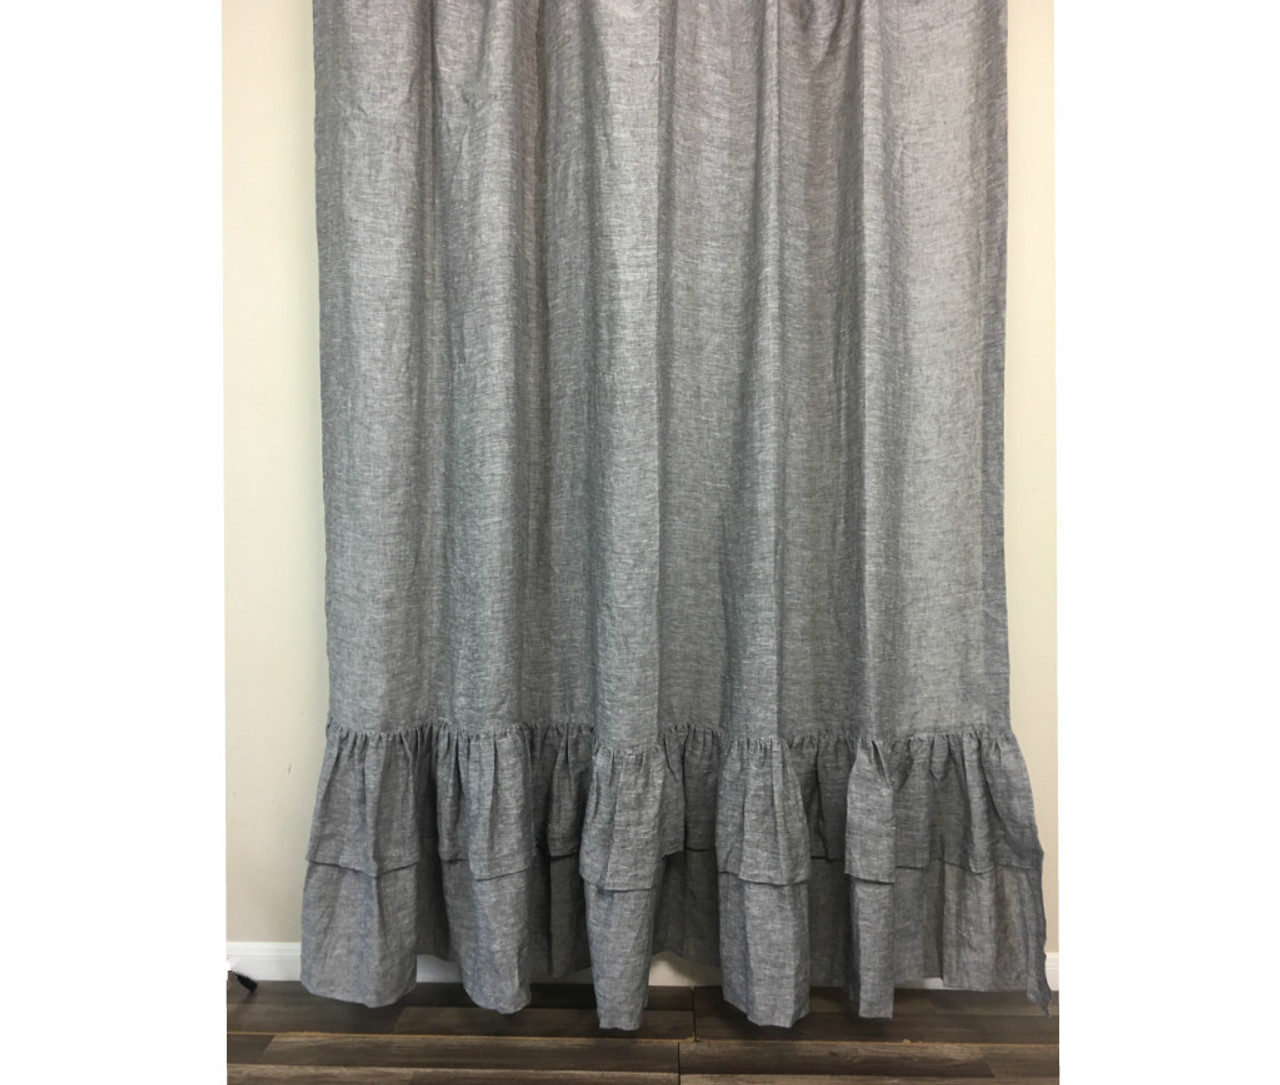 Chambray Grey Linen Shower Curtain With Mermaid Long Ruffles